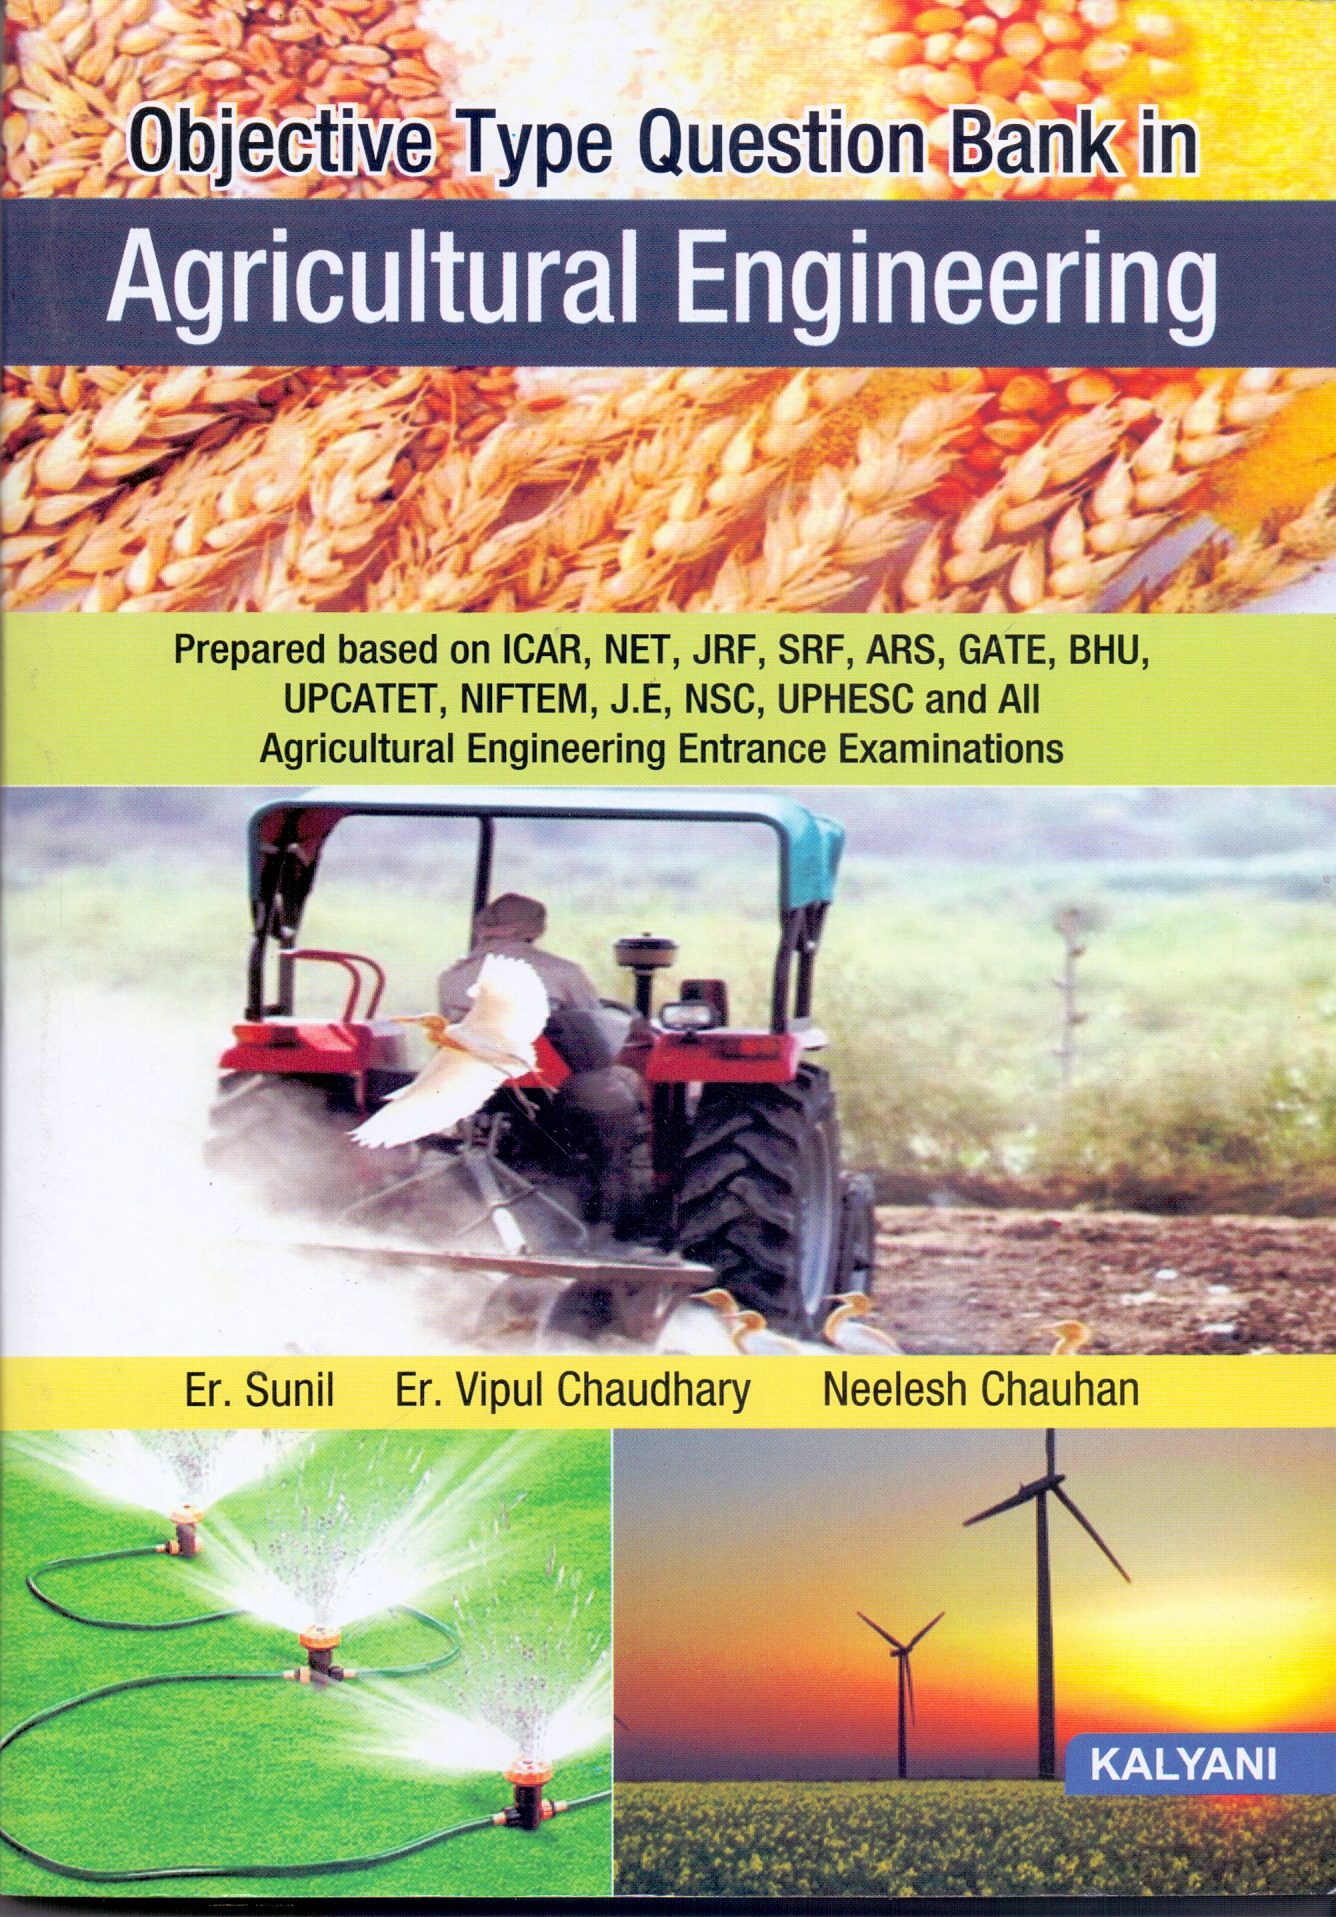 Objective Type Question Bank in Agricultural Engineering ICAR, JRF, SRF, GATE, BHU, UPCATET, NIFTEM, J.DE, NSE, UPHESC